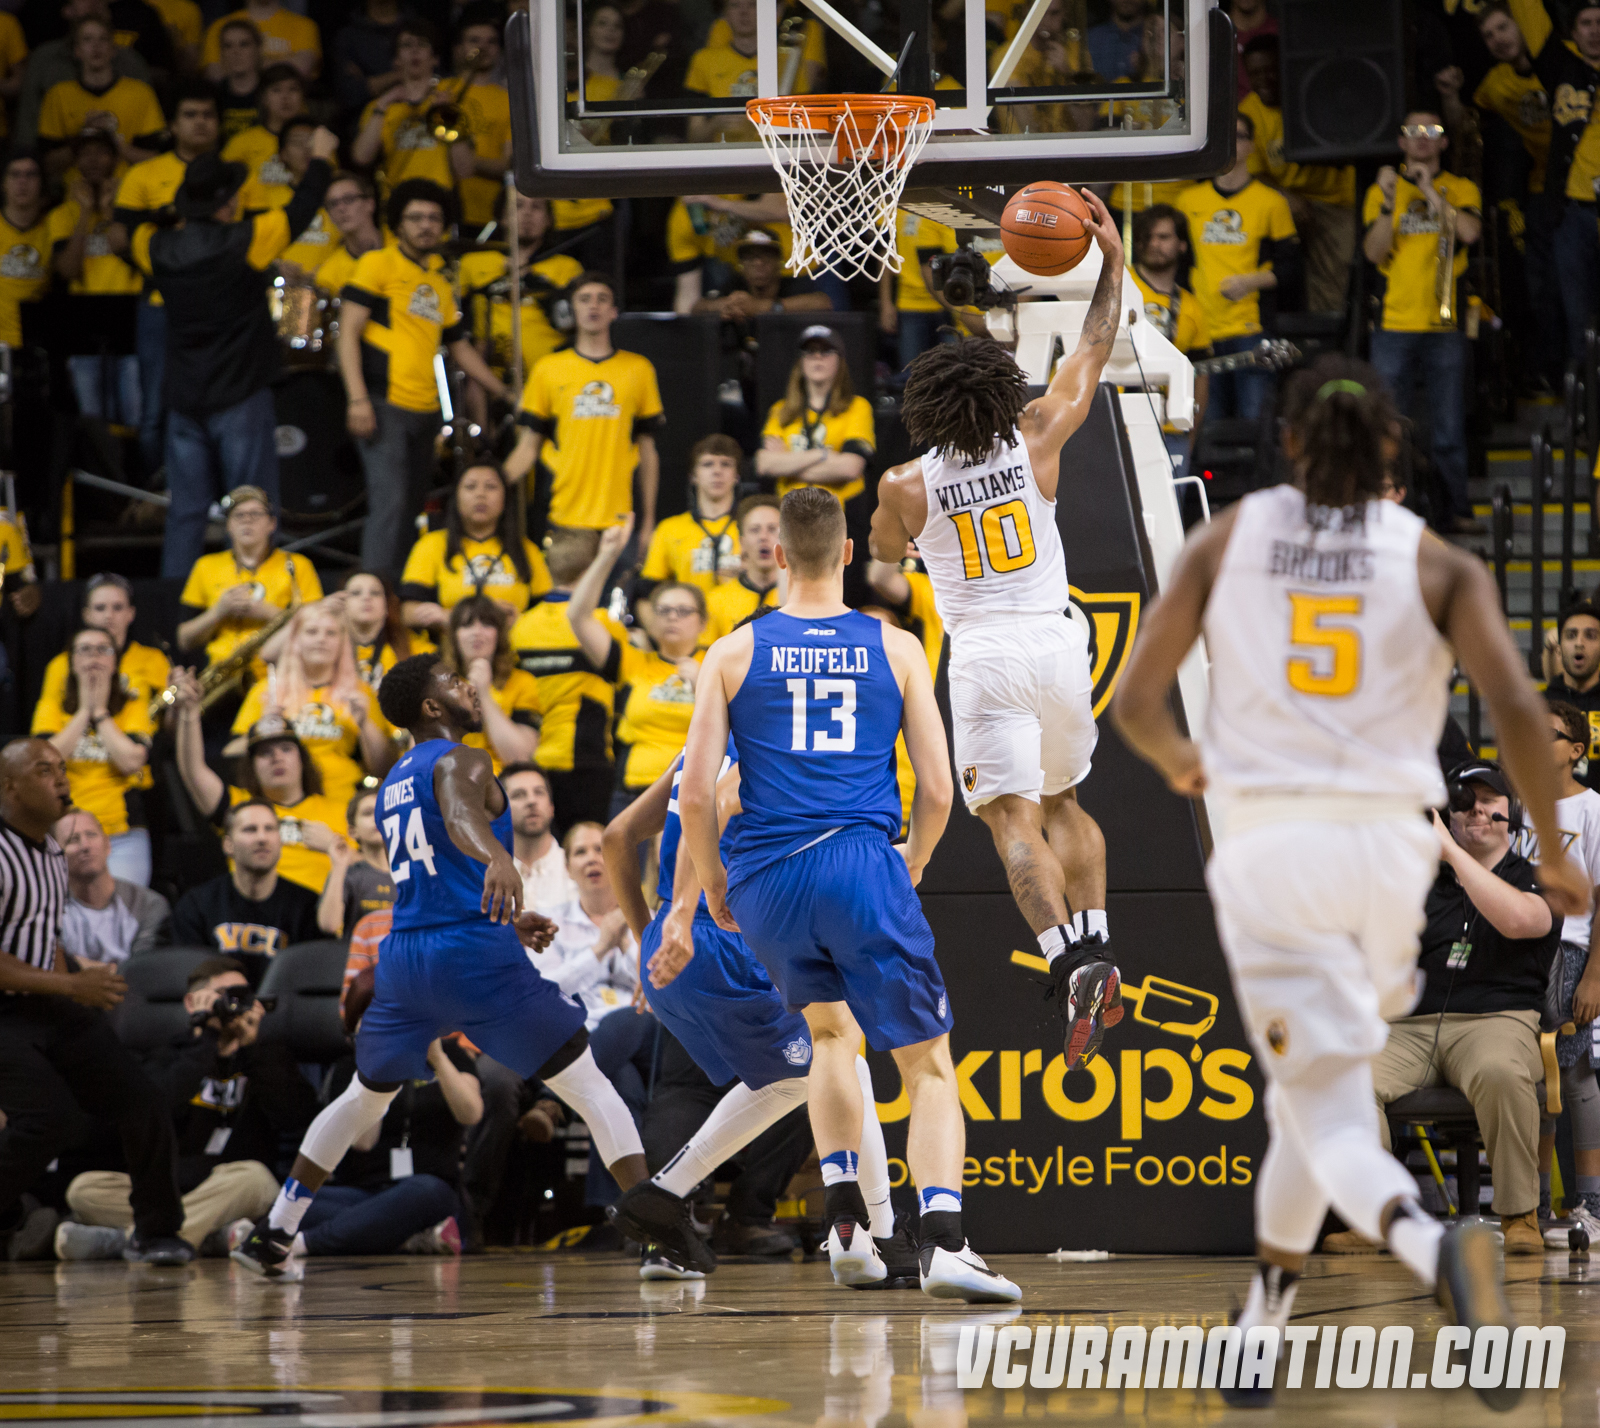 Williams leads Rams to victory over Billikens, 64-50 - Ram Nation